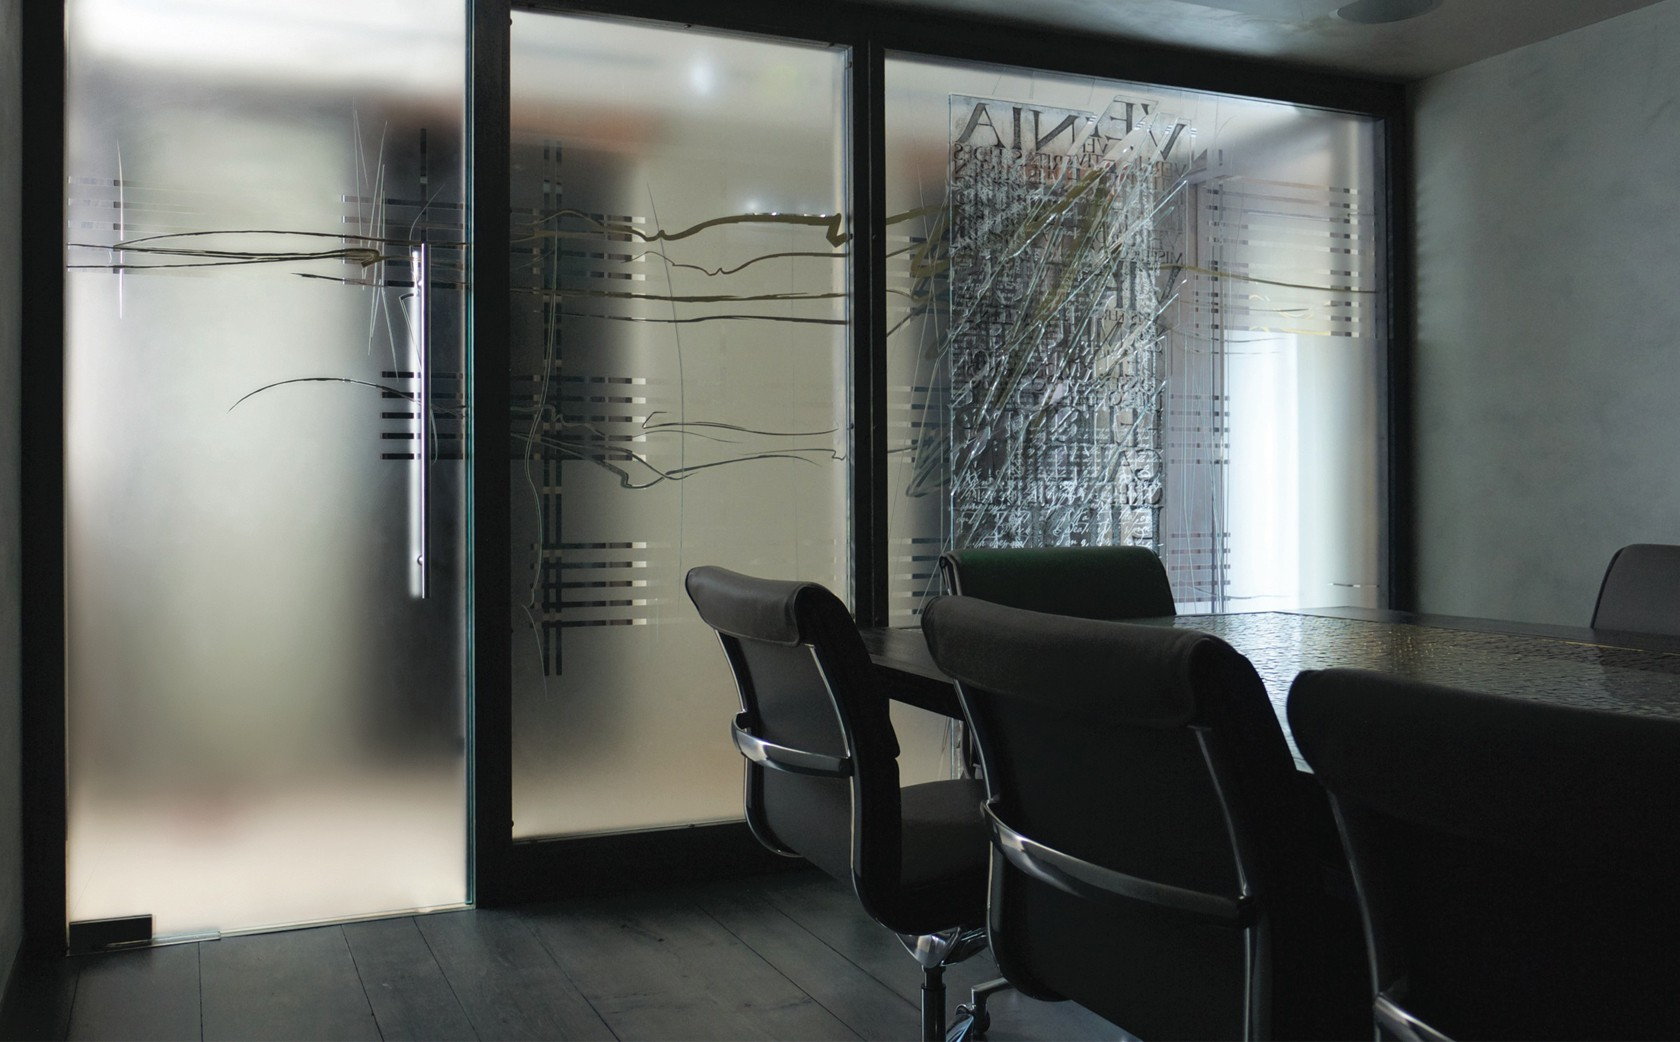 Architectural Glass Art Installation glass screens 'Counterpoint' - view from inside boardroom.